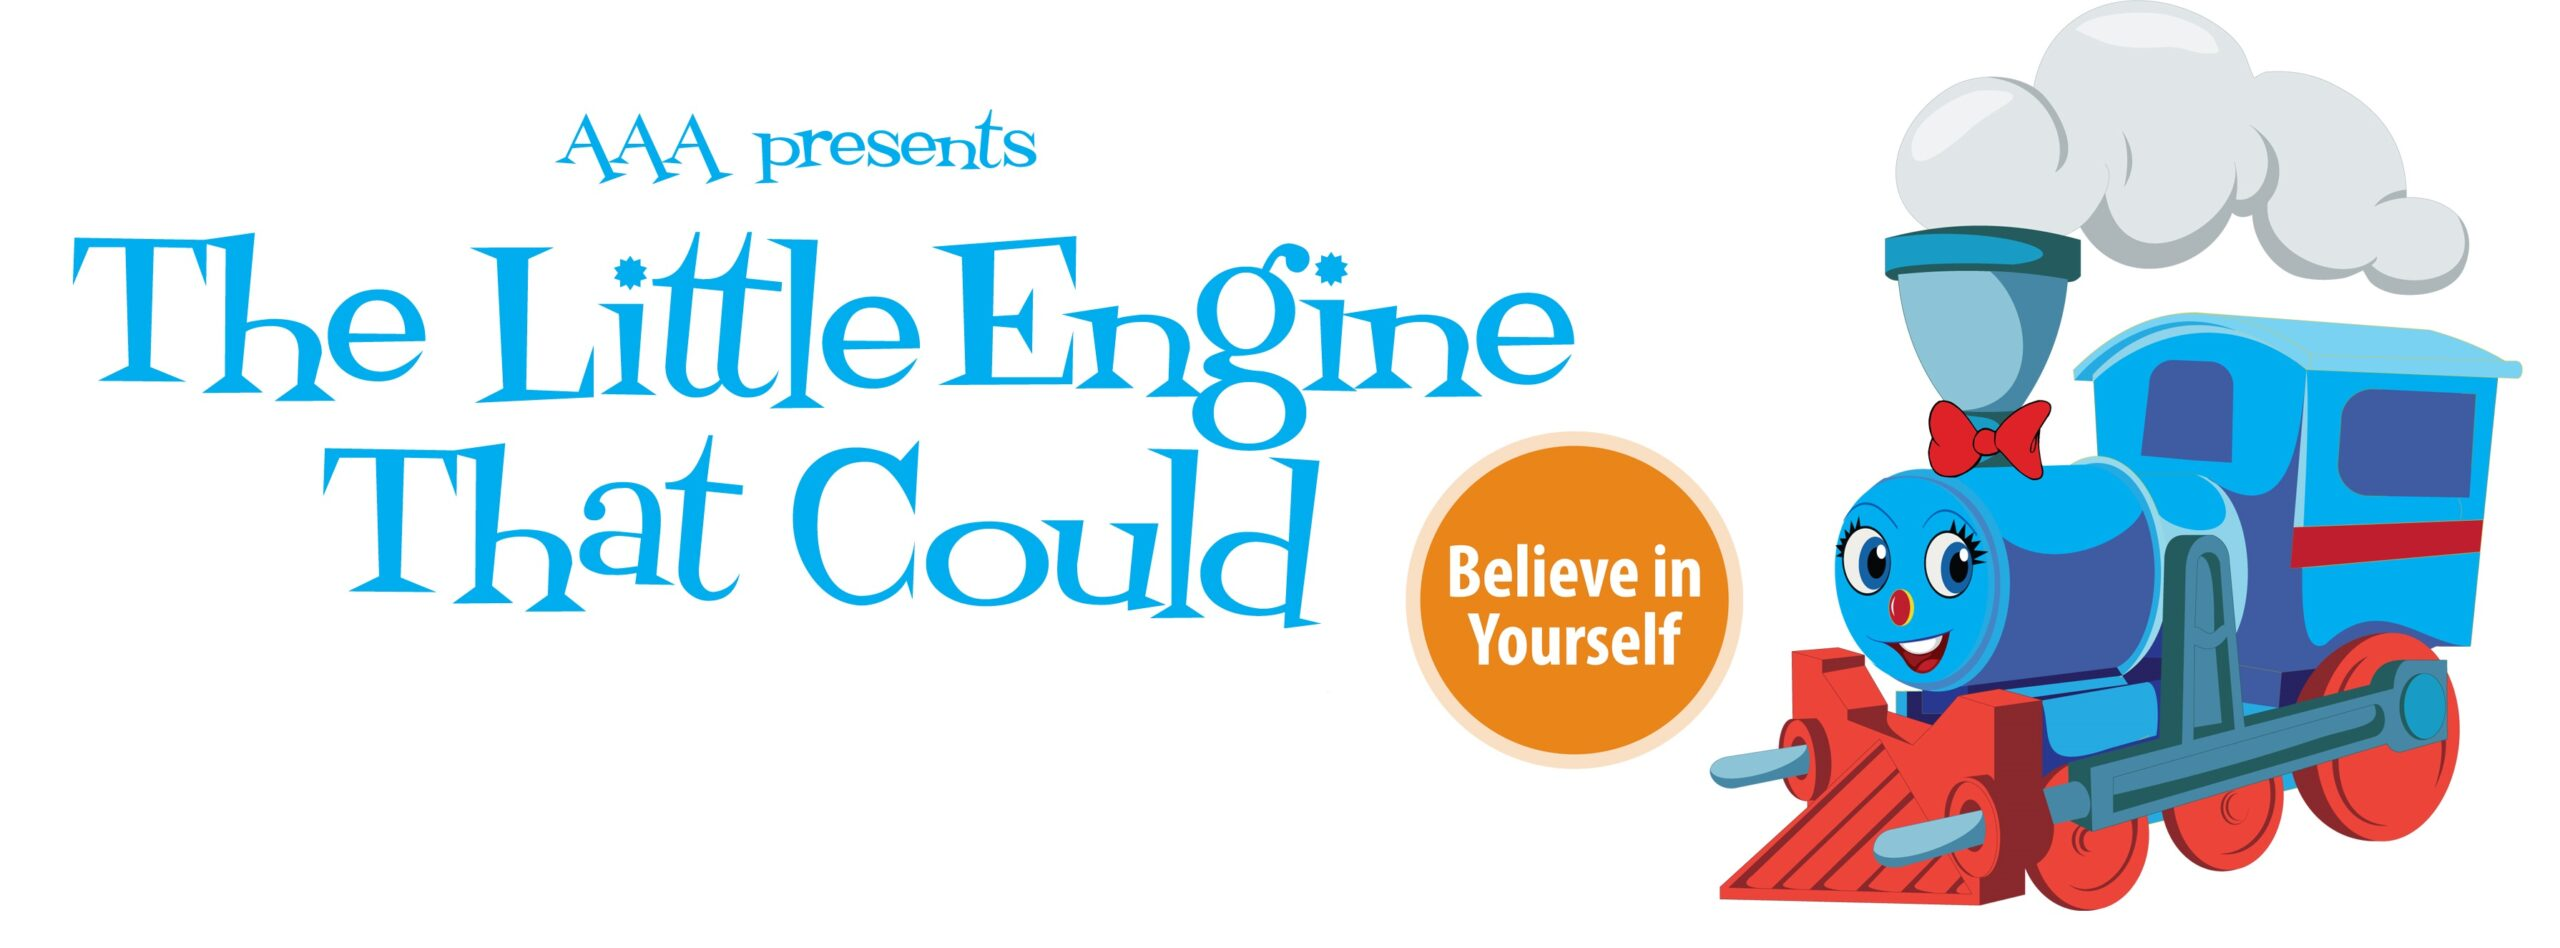 Aaa Presents The Little Engine That Could